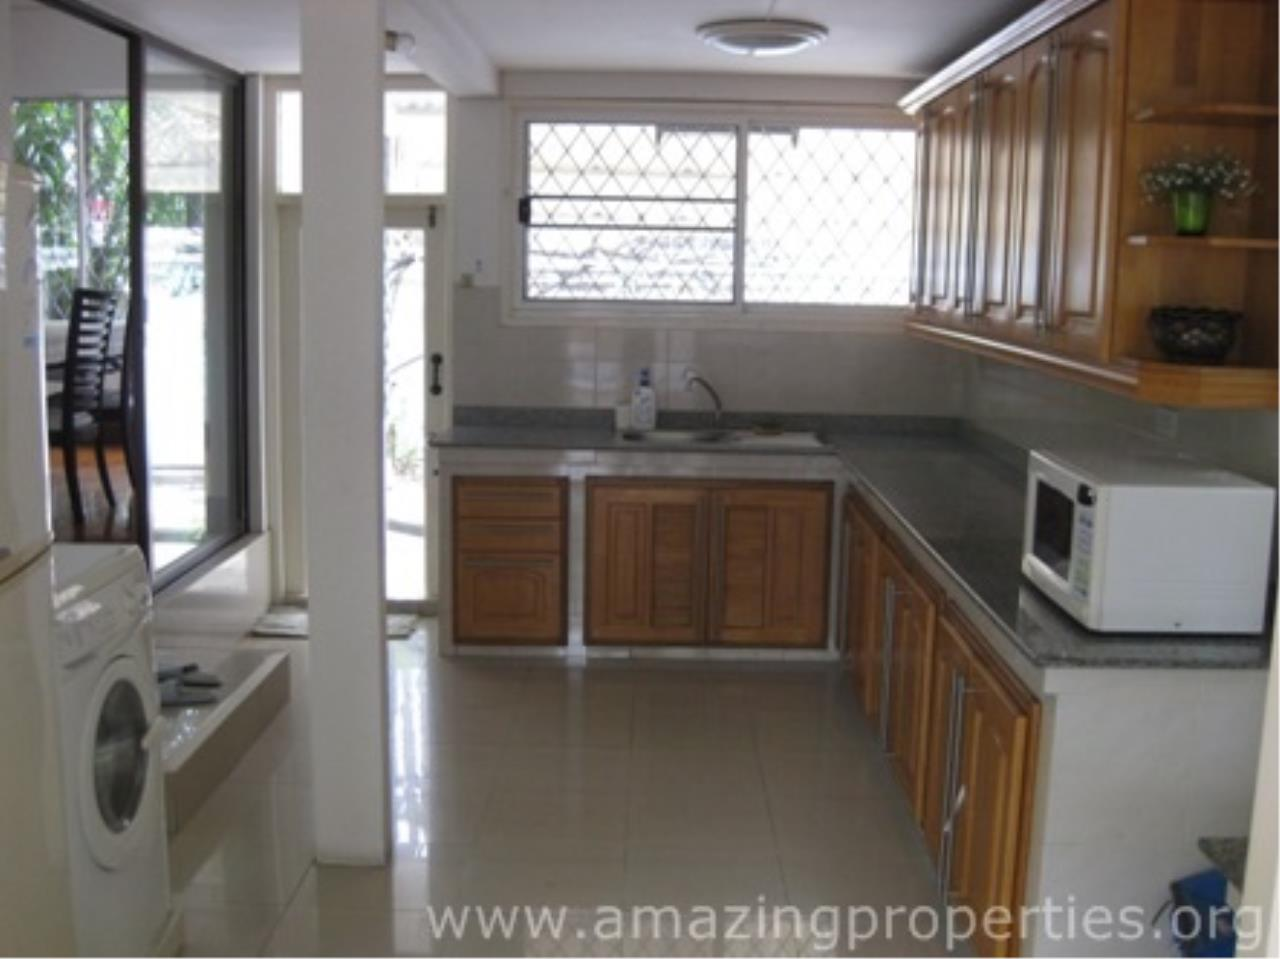 Amazing Properties Agency's 2 bedrooms House for rent 12